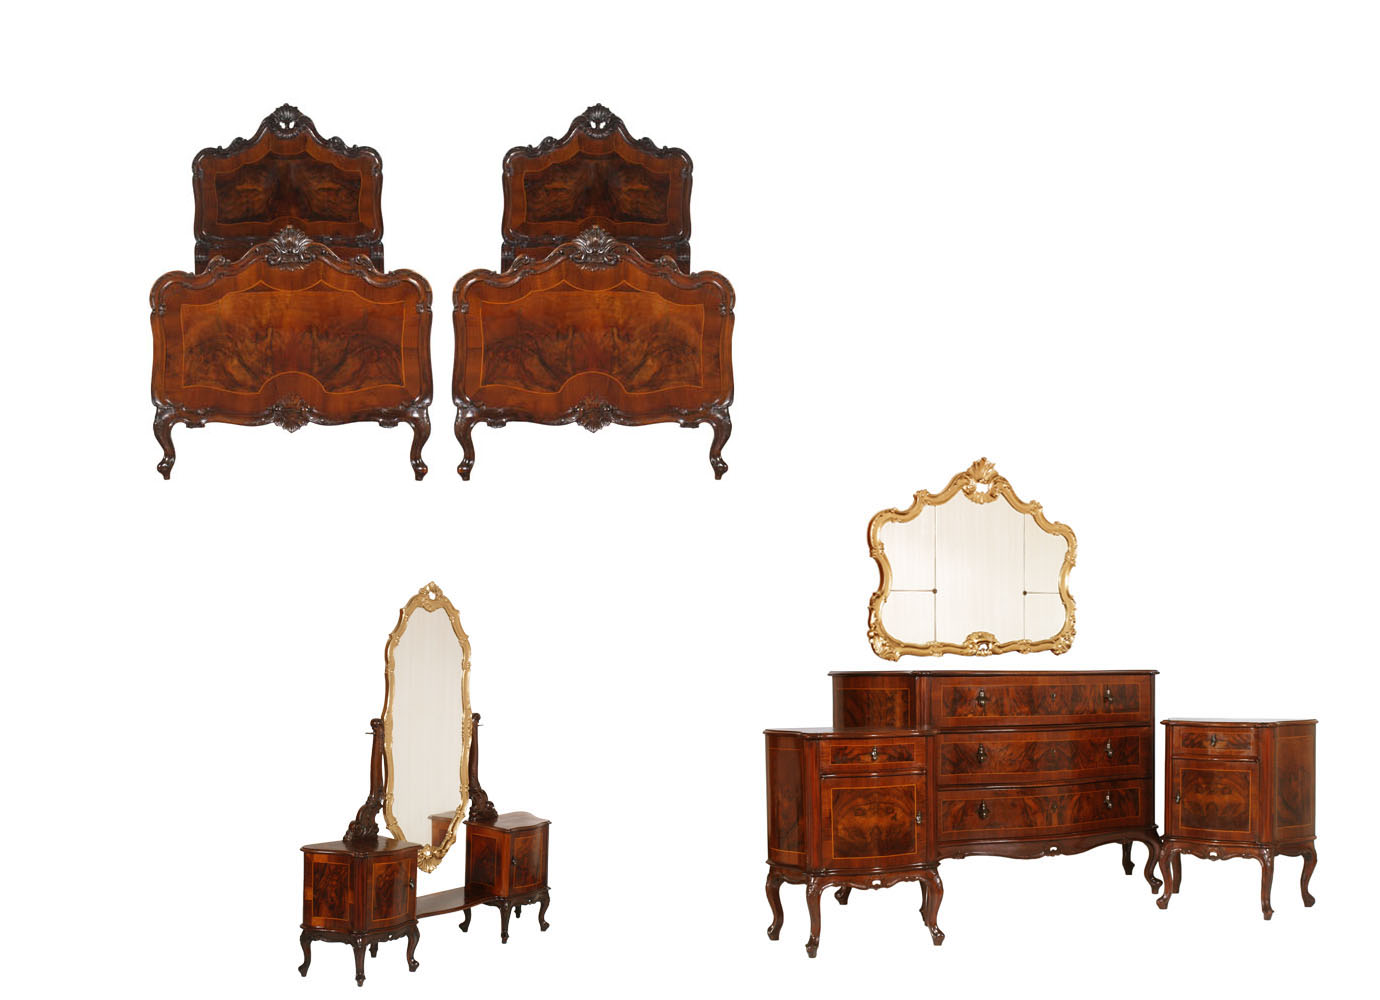 Baroque bedroom furniture antica camera da letto barocco - Camera da letto stile barocco ...